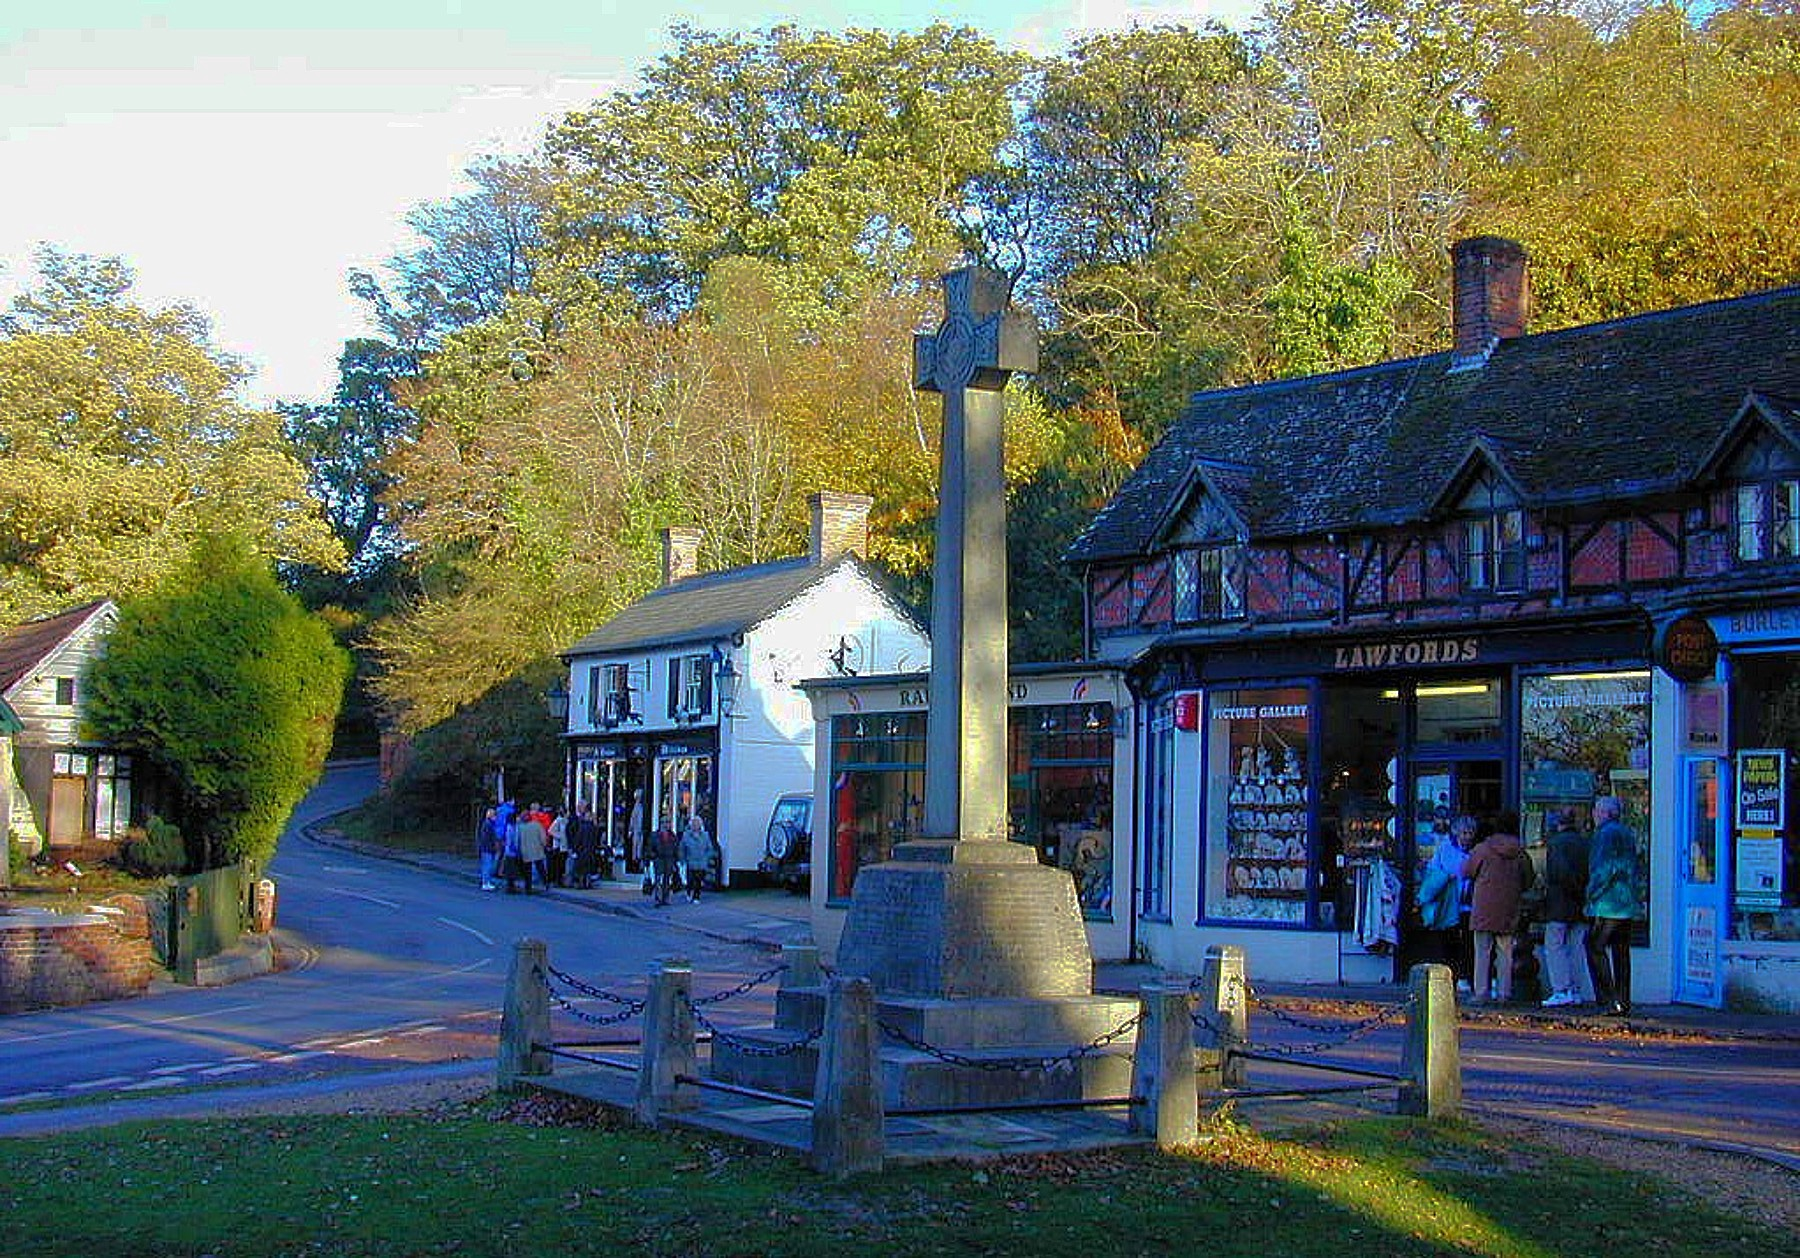 Burley Market Cross in England's New Forest National Park that is filled with enough stories of ghosts, witches, smugglers, and Ronald Reagan's astrologer to make every day seem like Halloween by David A. Laws